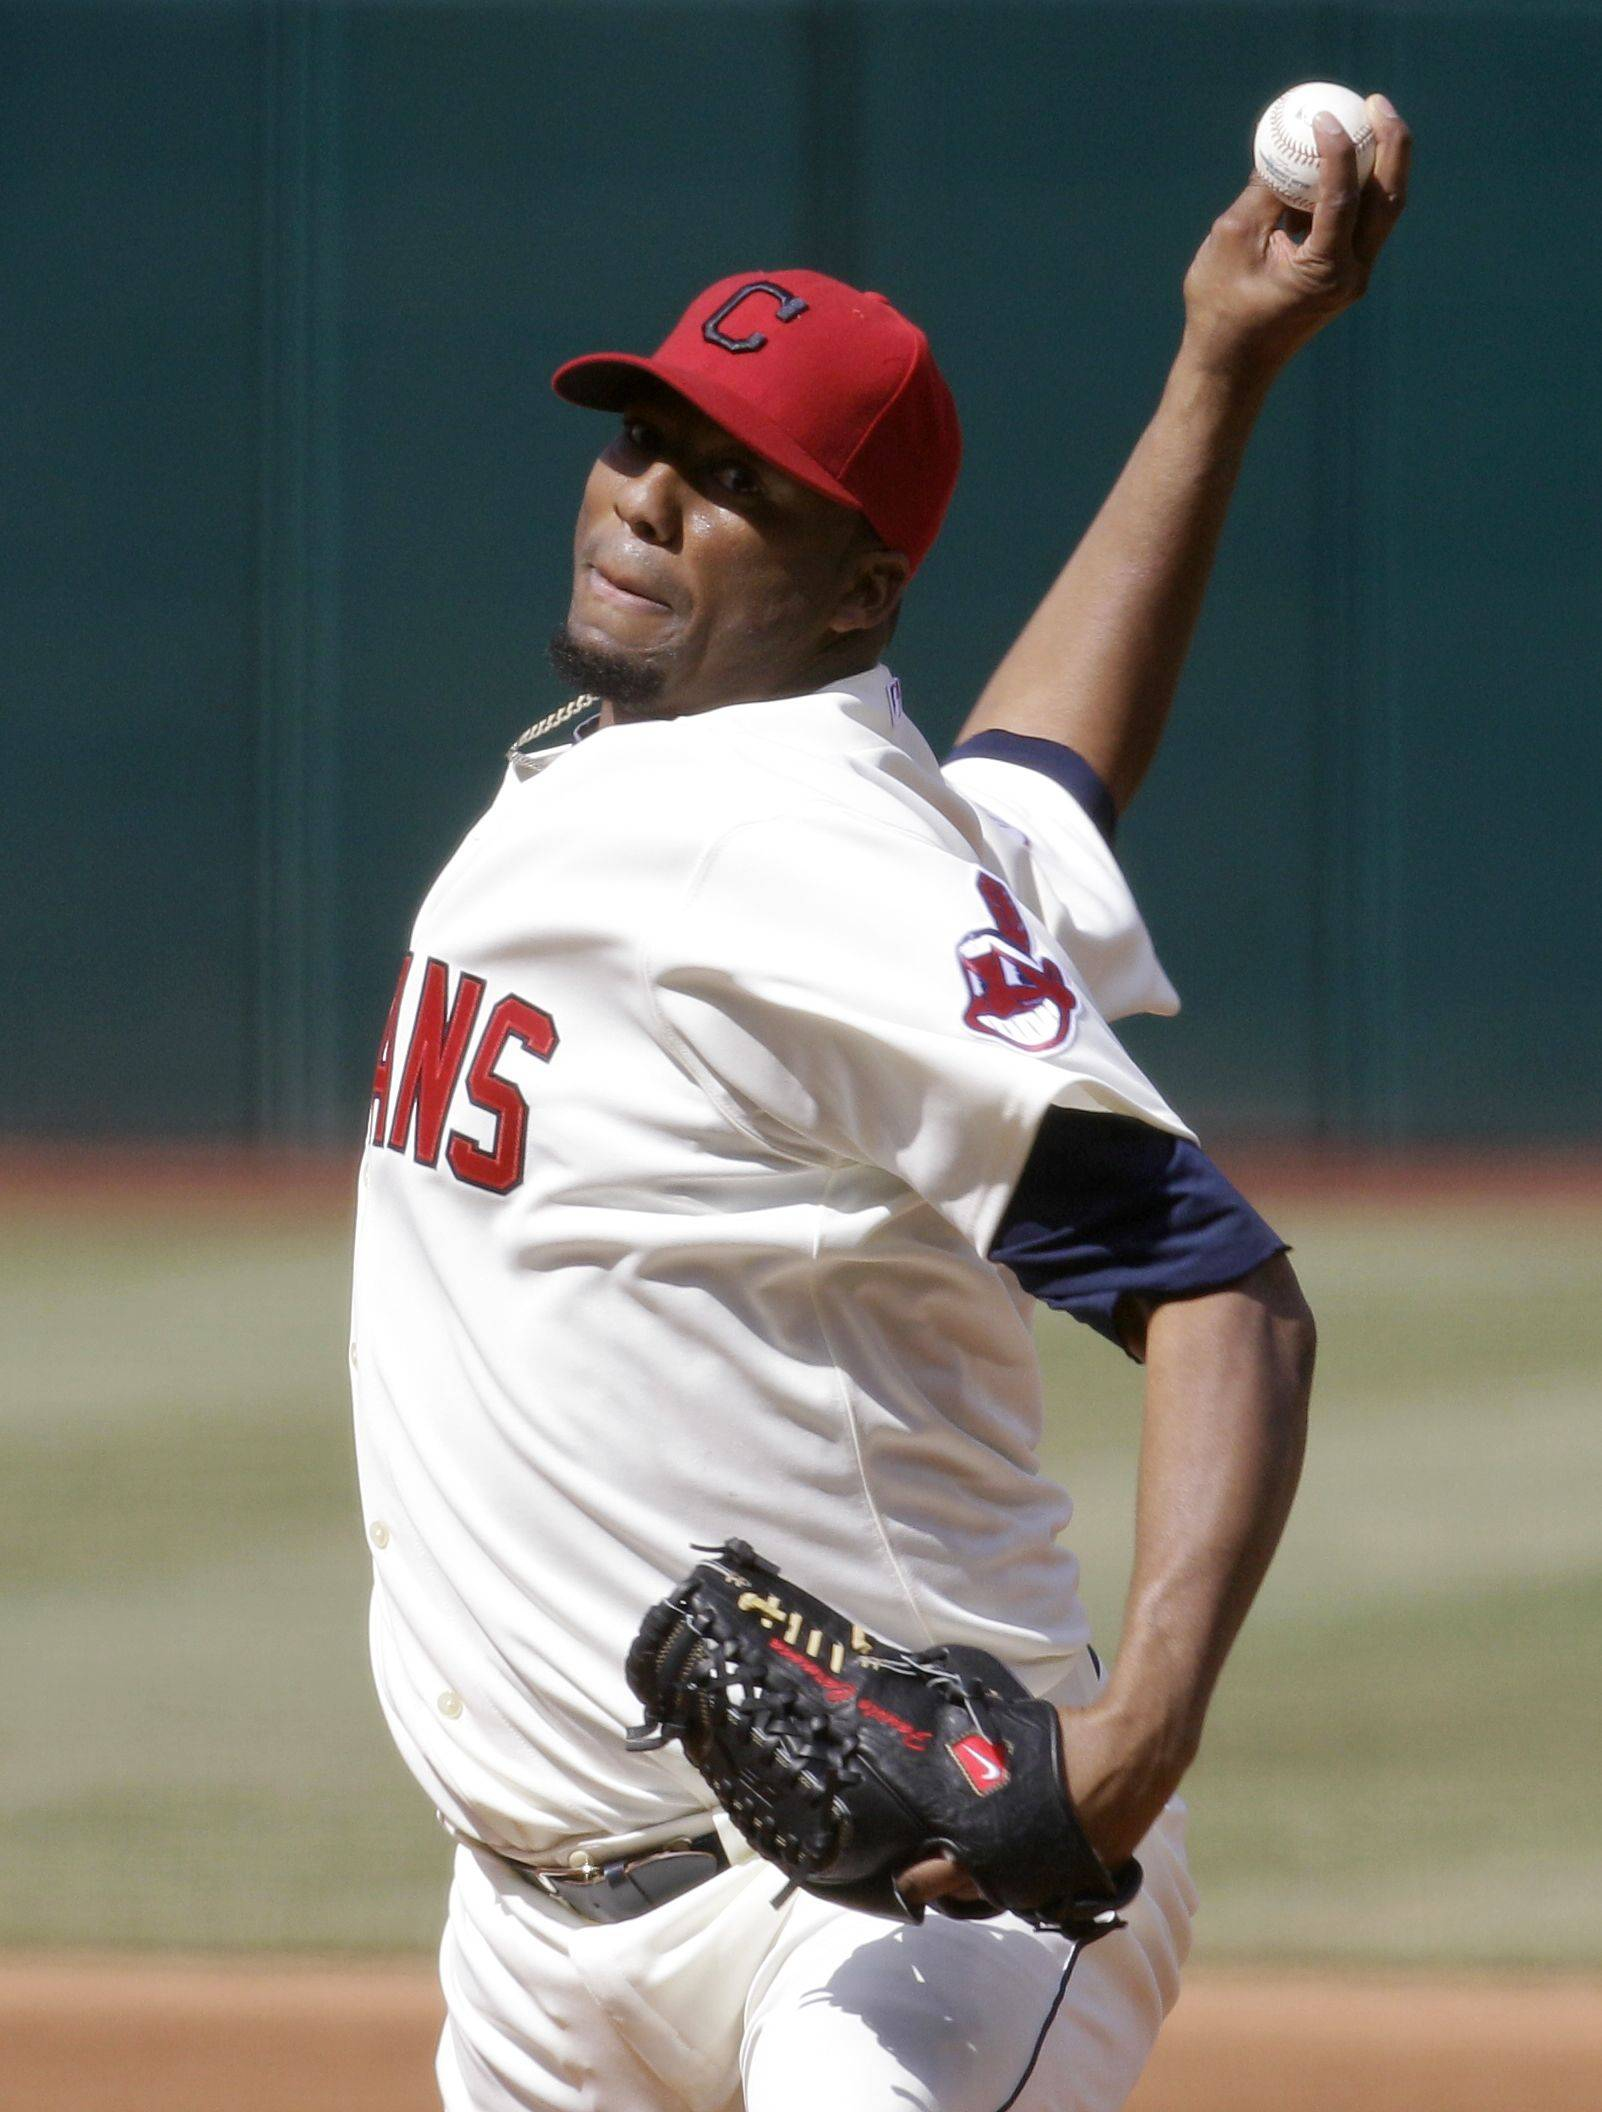 Cleveland Indians starting pitcher Fausto Carmona pitches to the Chicago White Sox in the first inning in an opening day baseball game, Friday, April 1, 2011, in Cleveland.